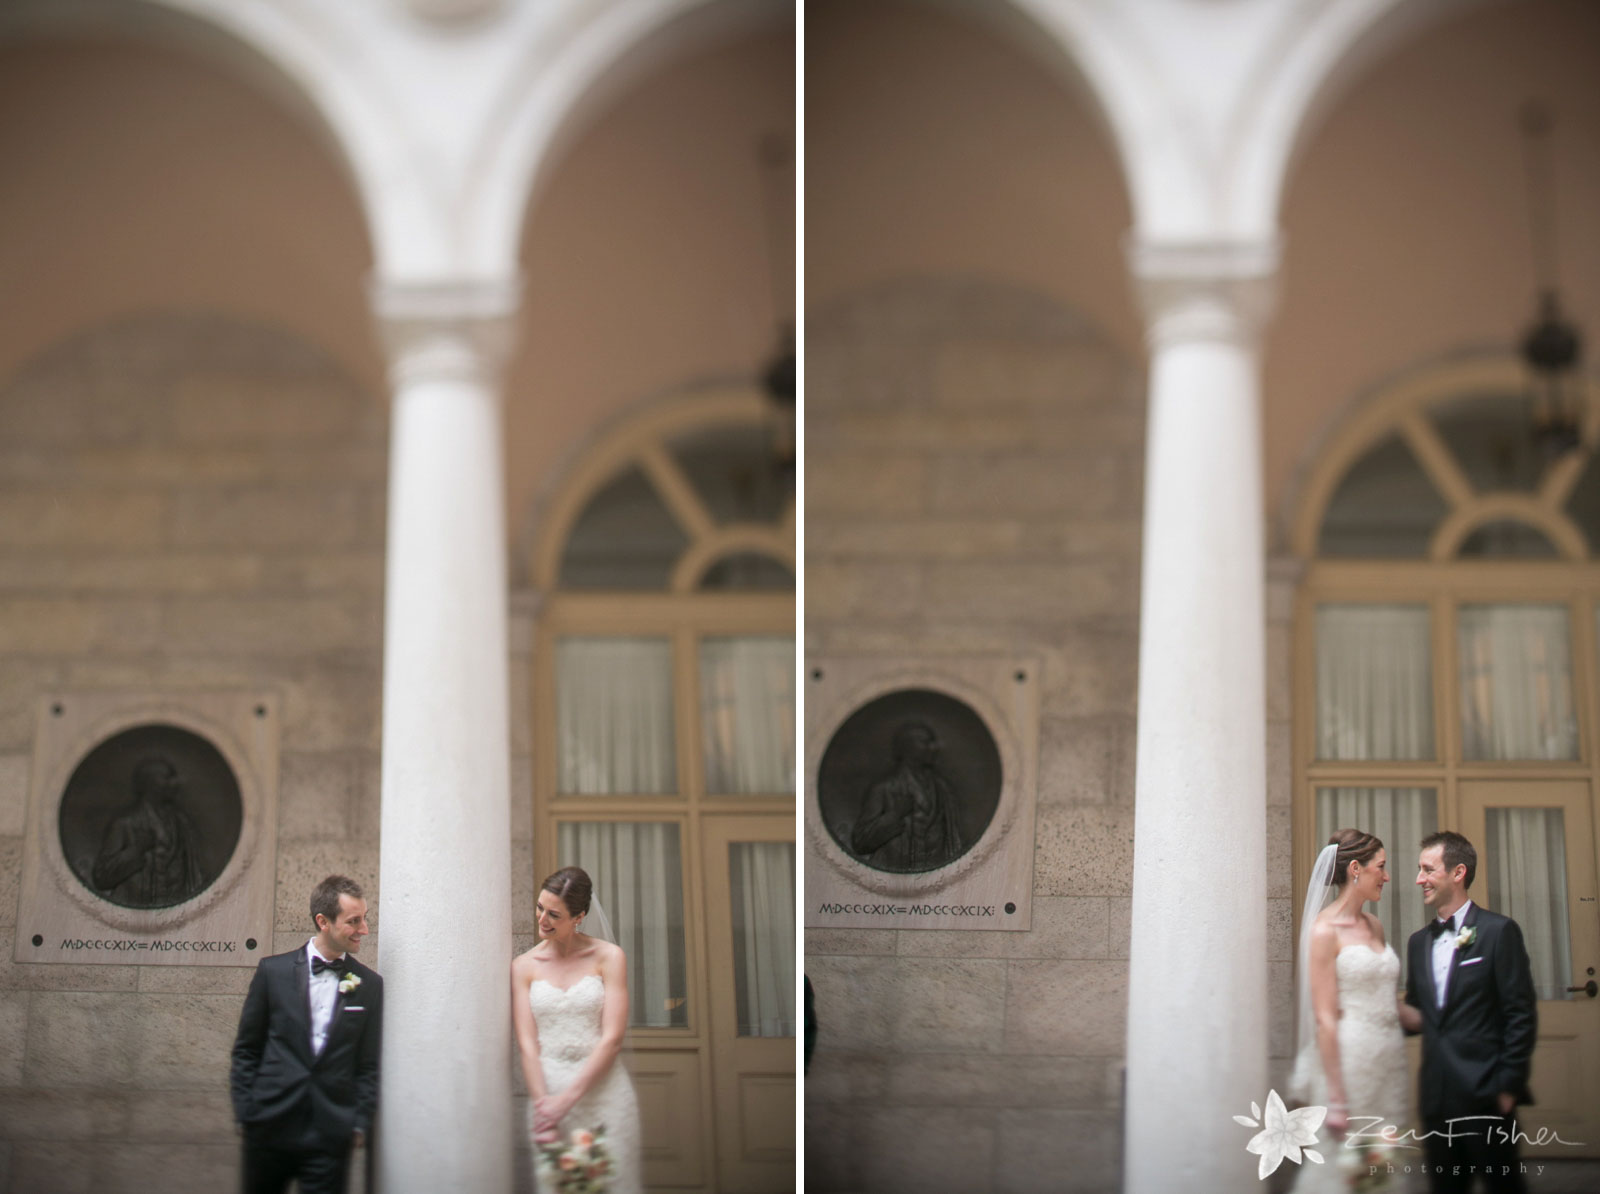 Playful bride and groom portraits looking at each other in courtyard at Boston Public Library.